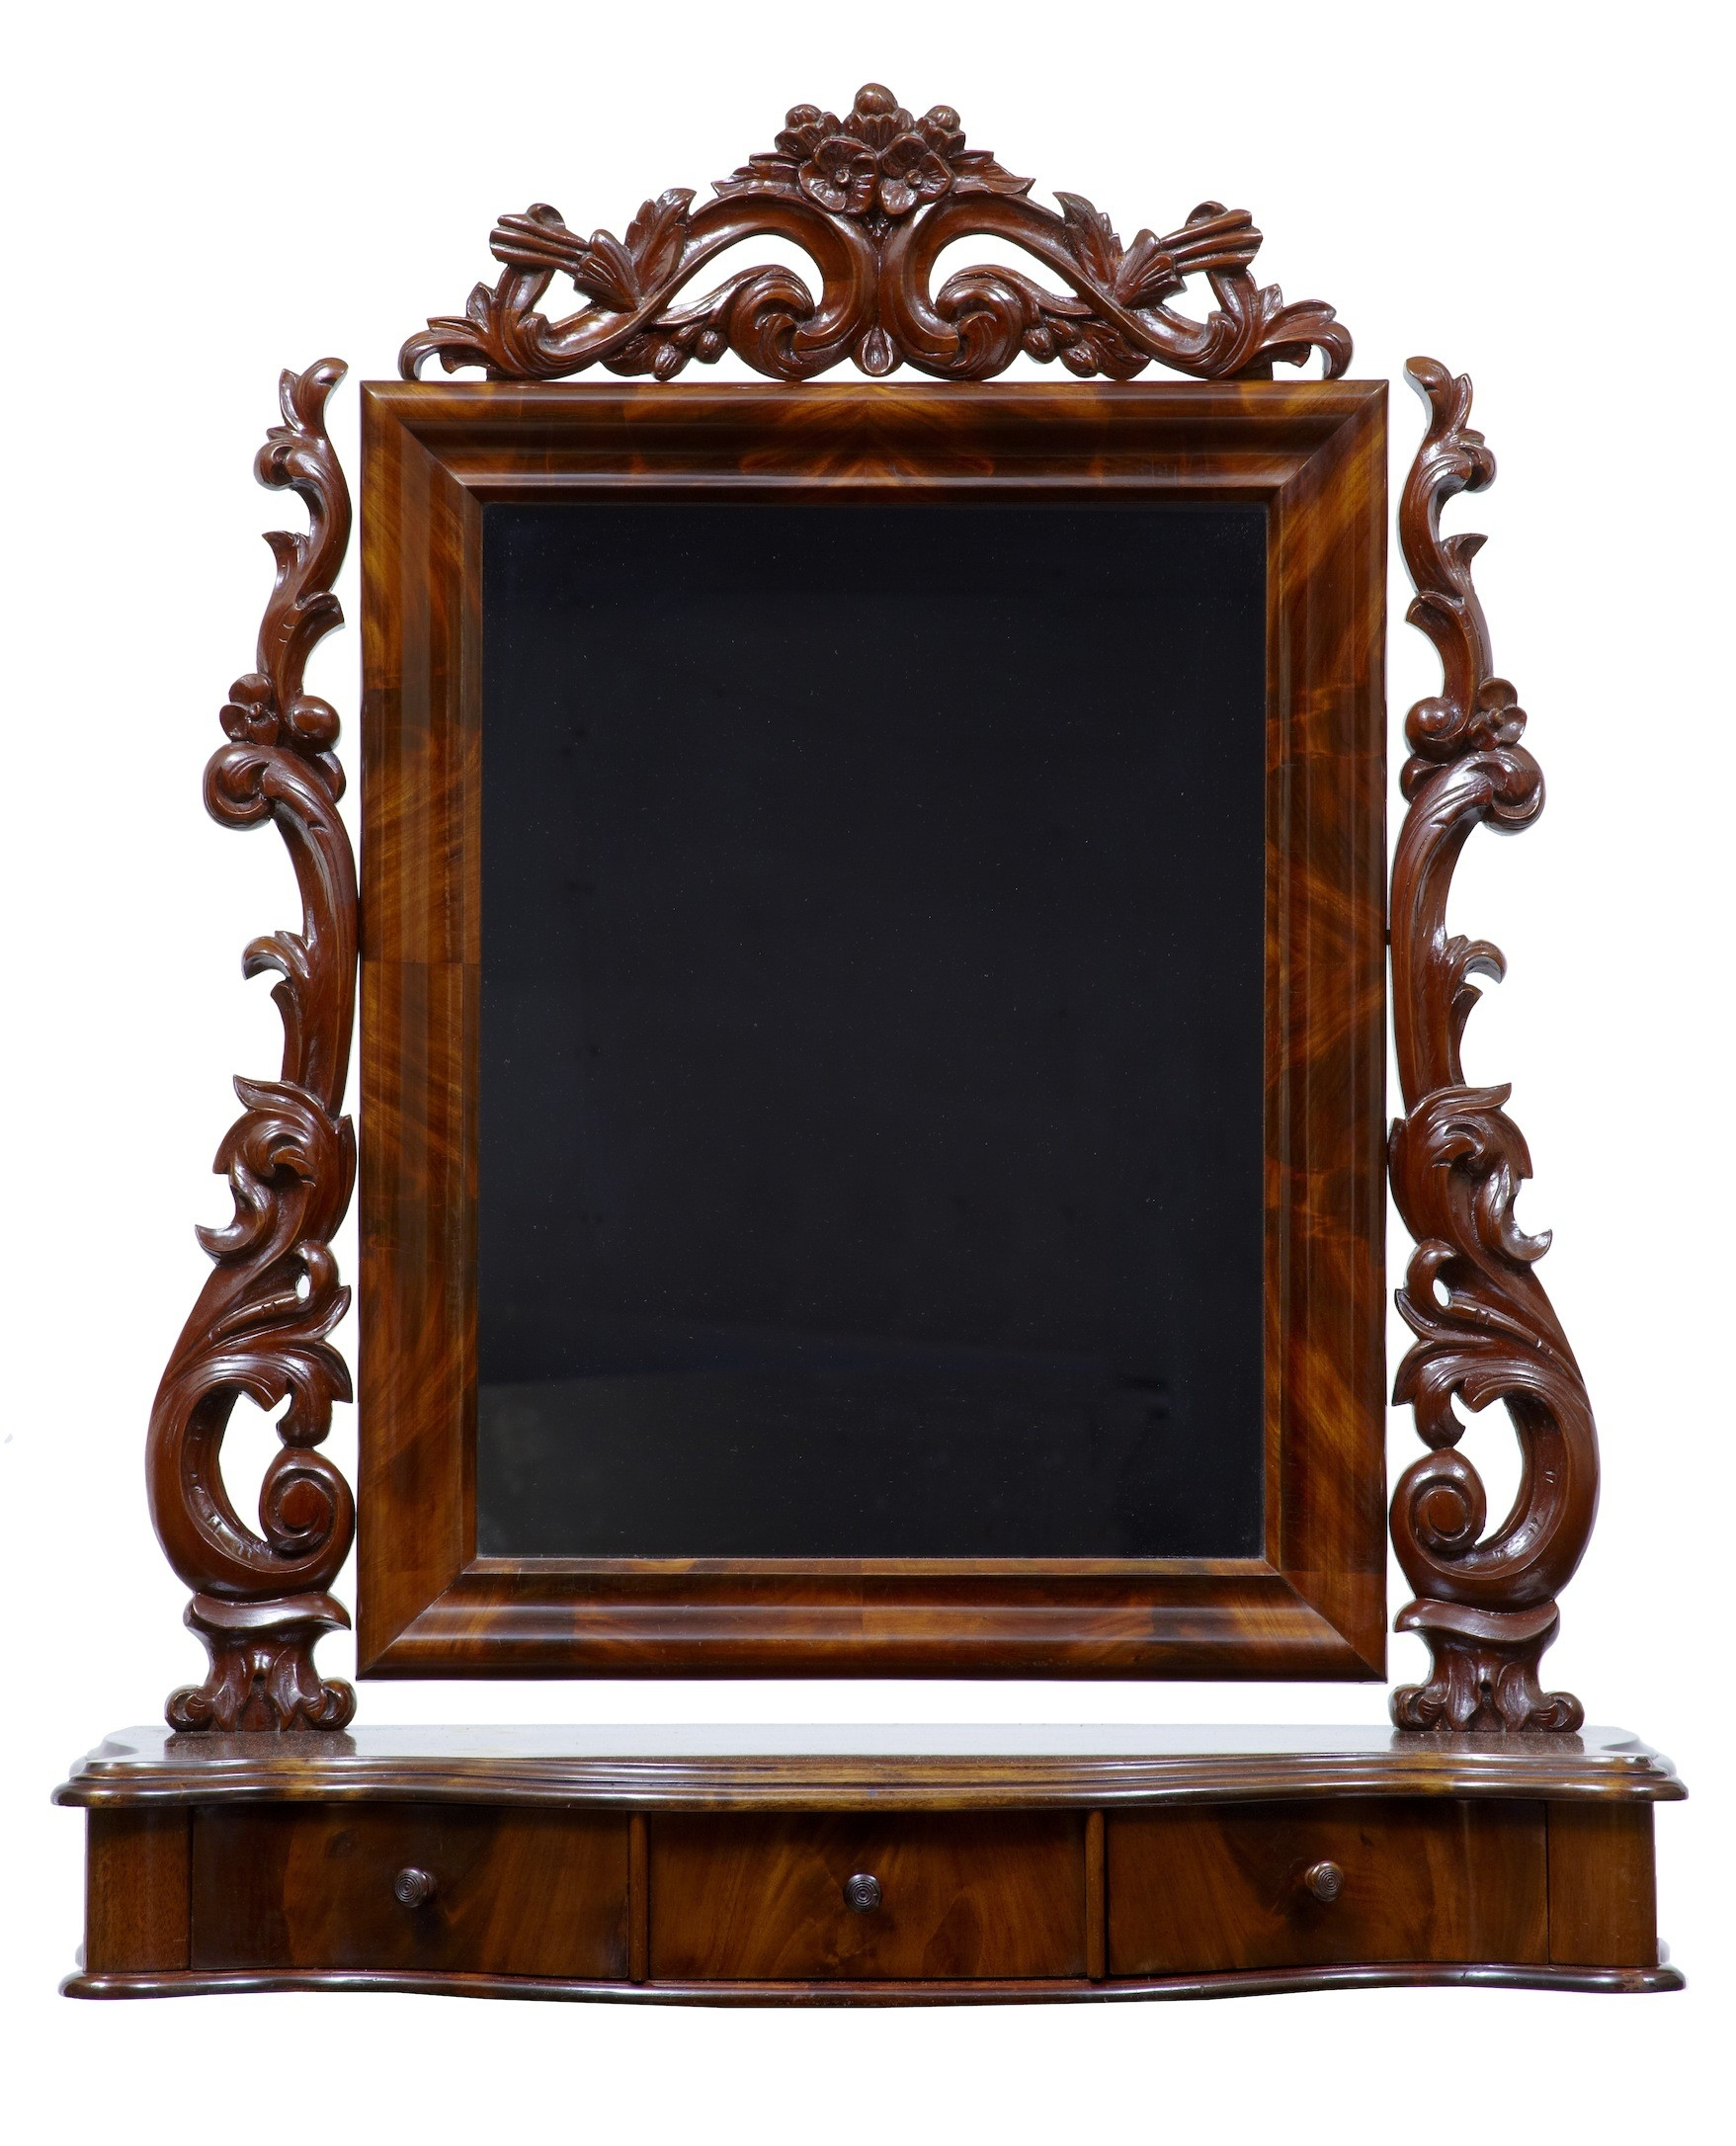 Dressing Table Mirror Stand Image Gallery Dirdoo With Mirror On Stand For Dressing Table (Image 3 of 15)